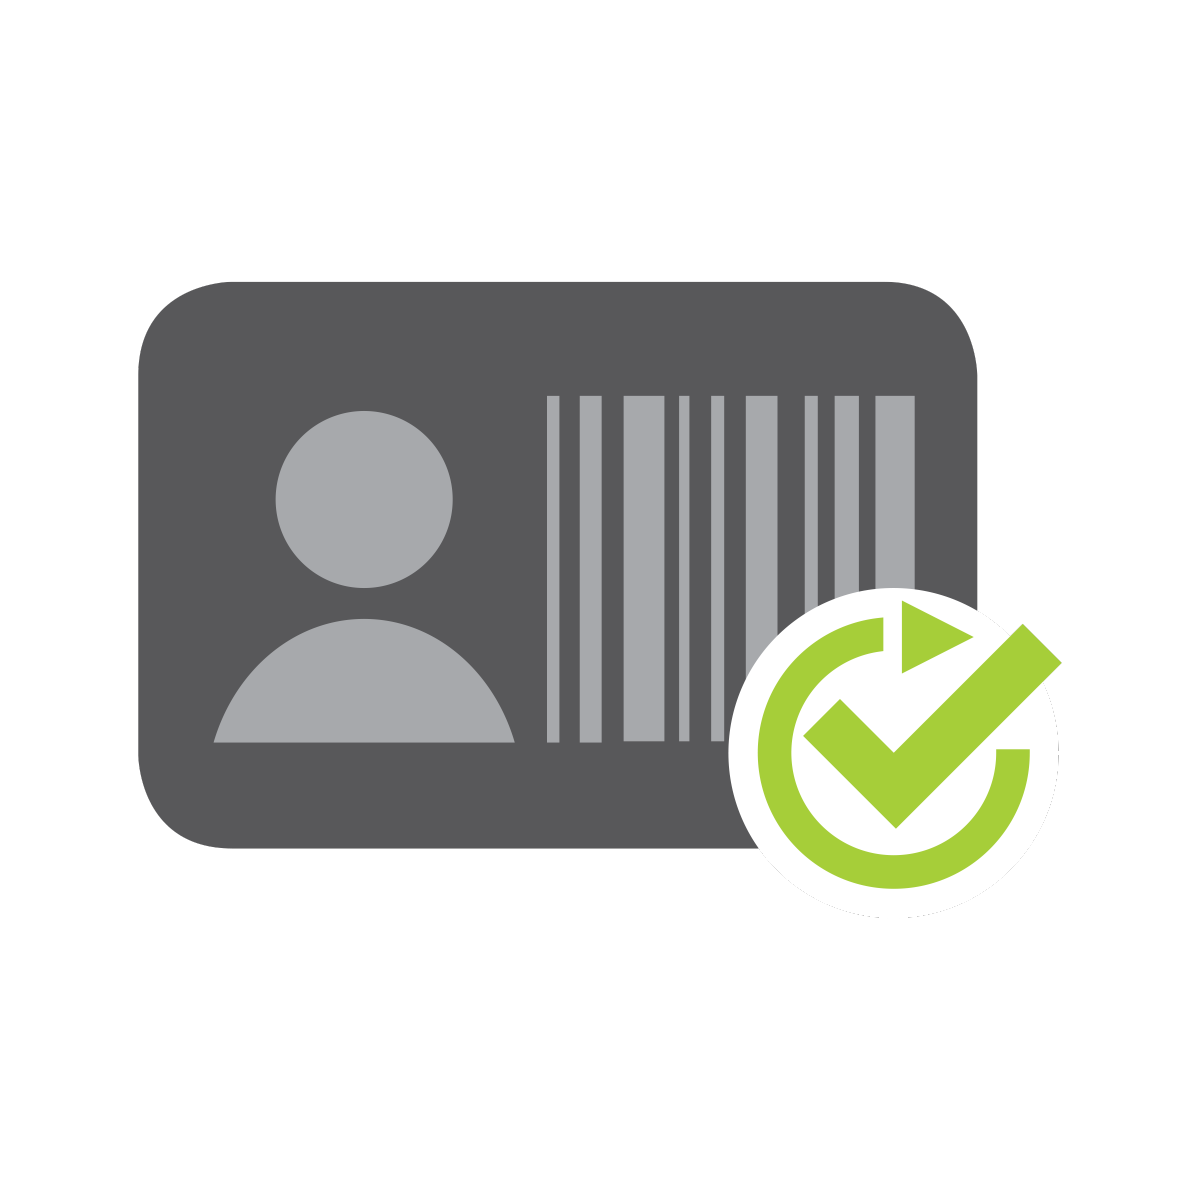 Orcid identification card image. Trust clipart organizational commitment